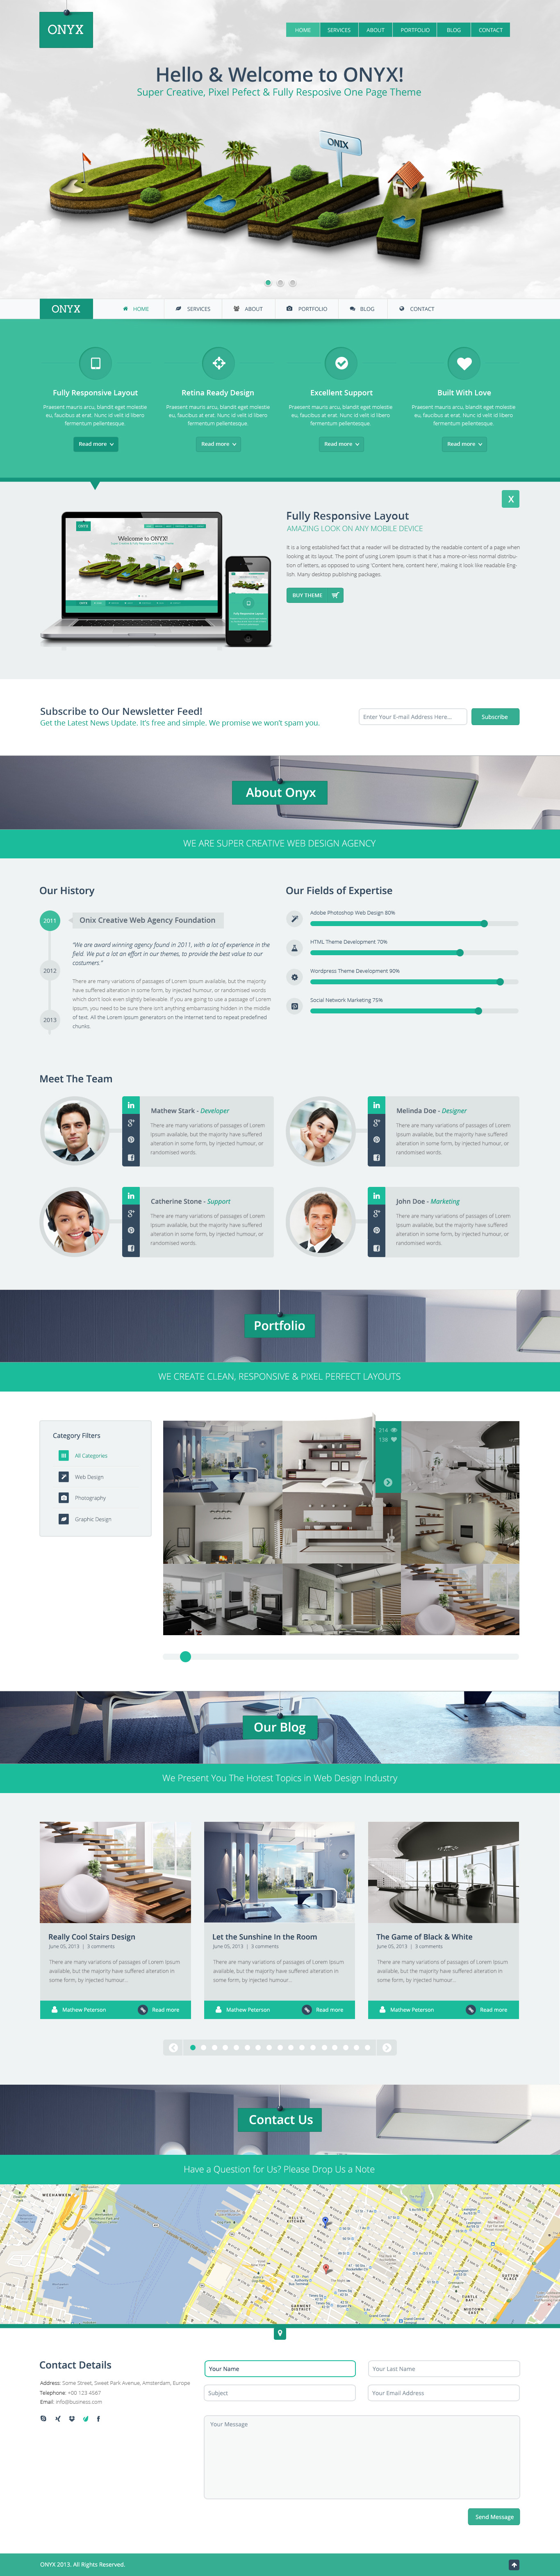 Onyx creative one page theme cognizant rebrand pinterest web